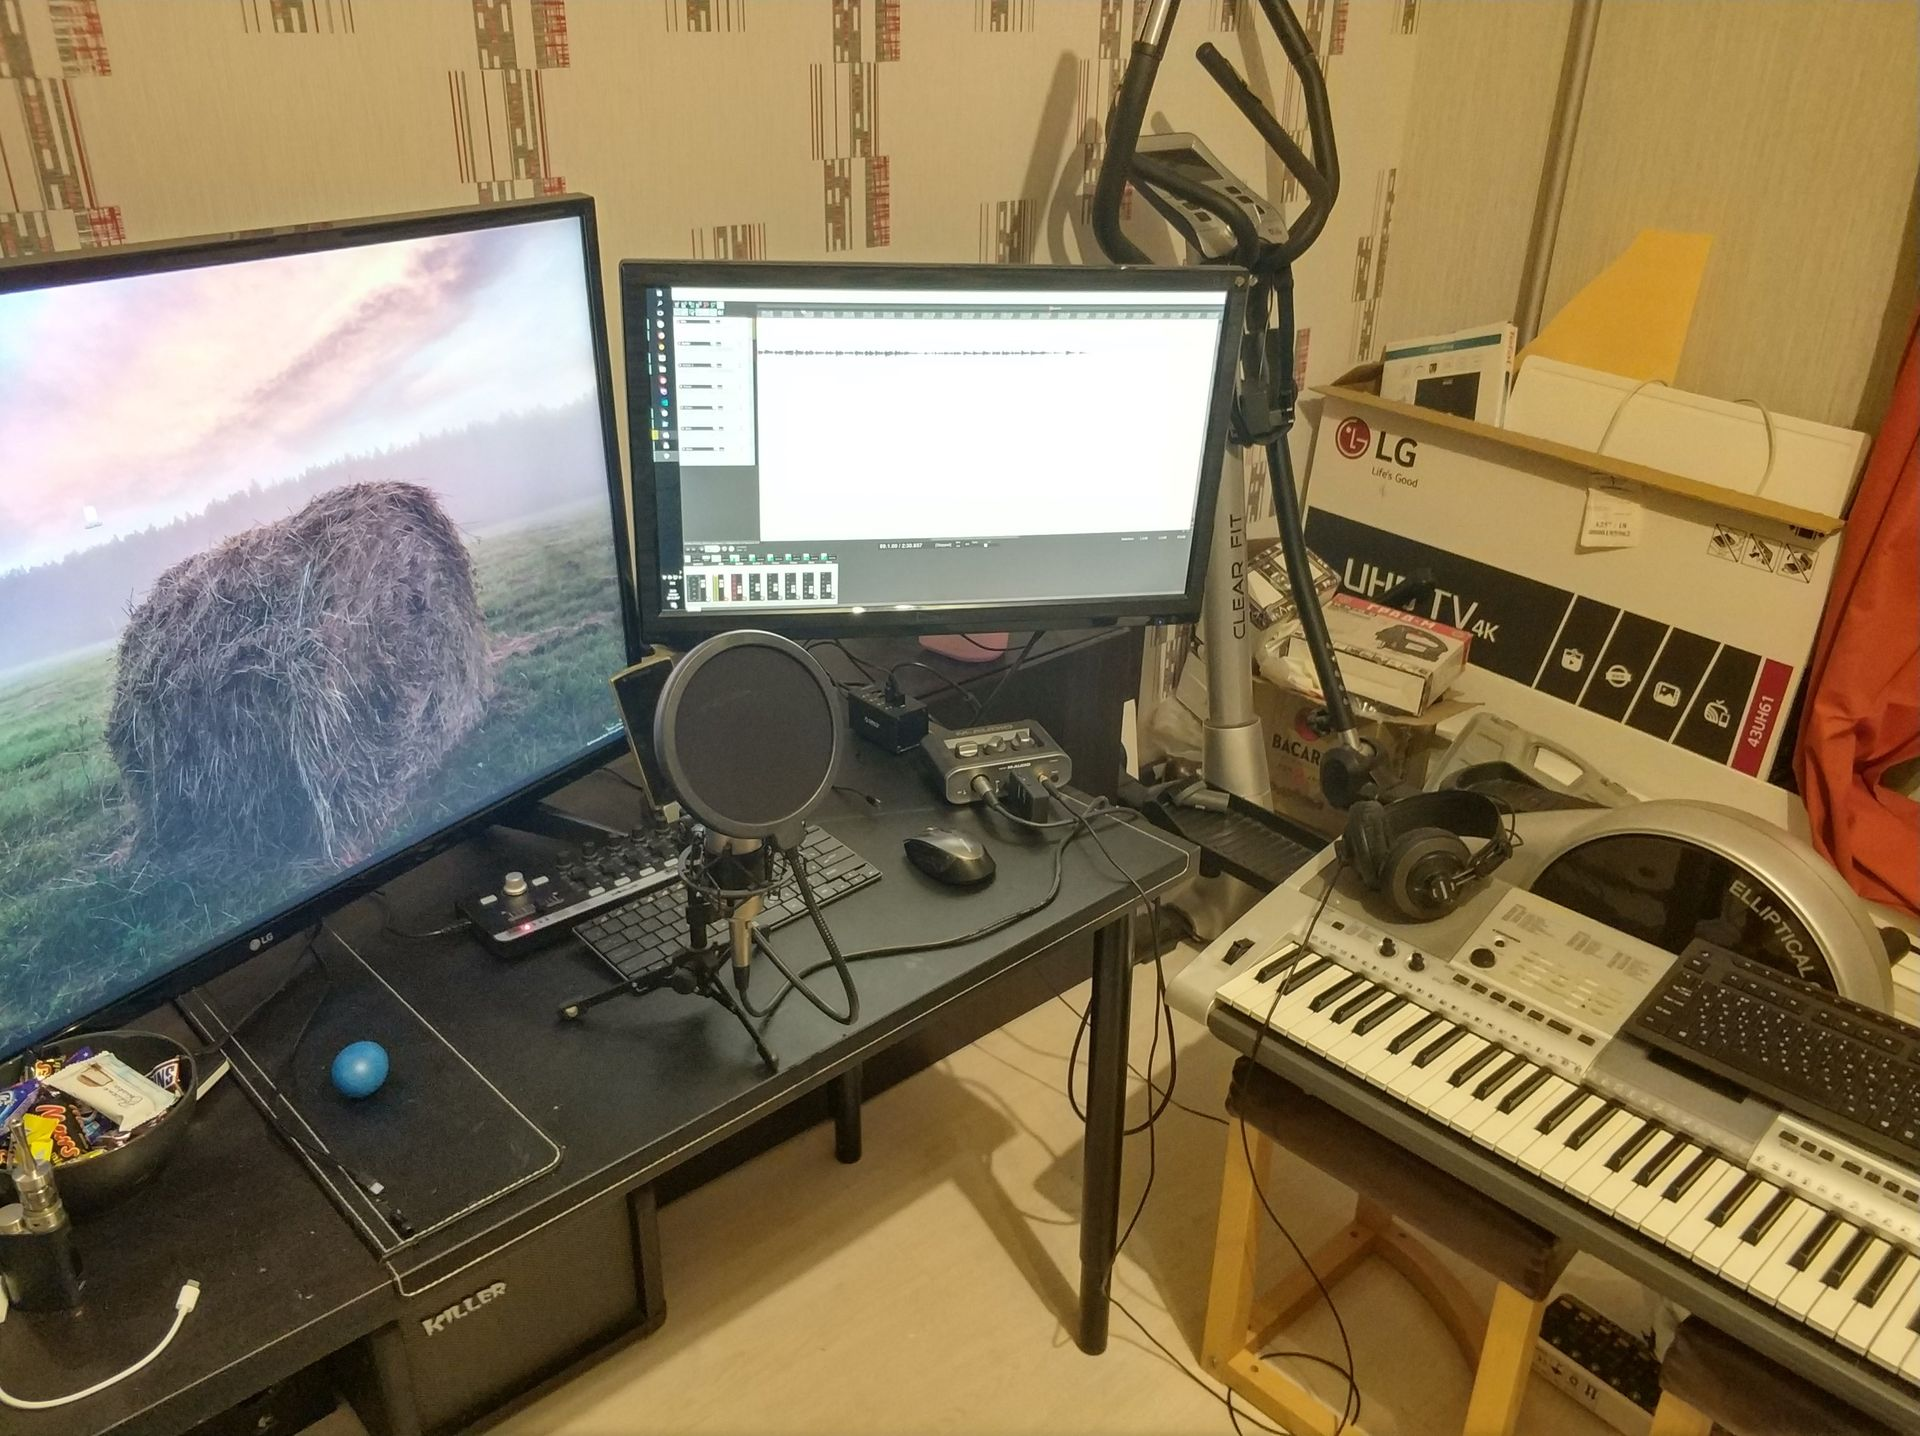 monitors, synth and microphones